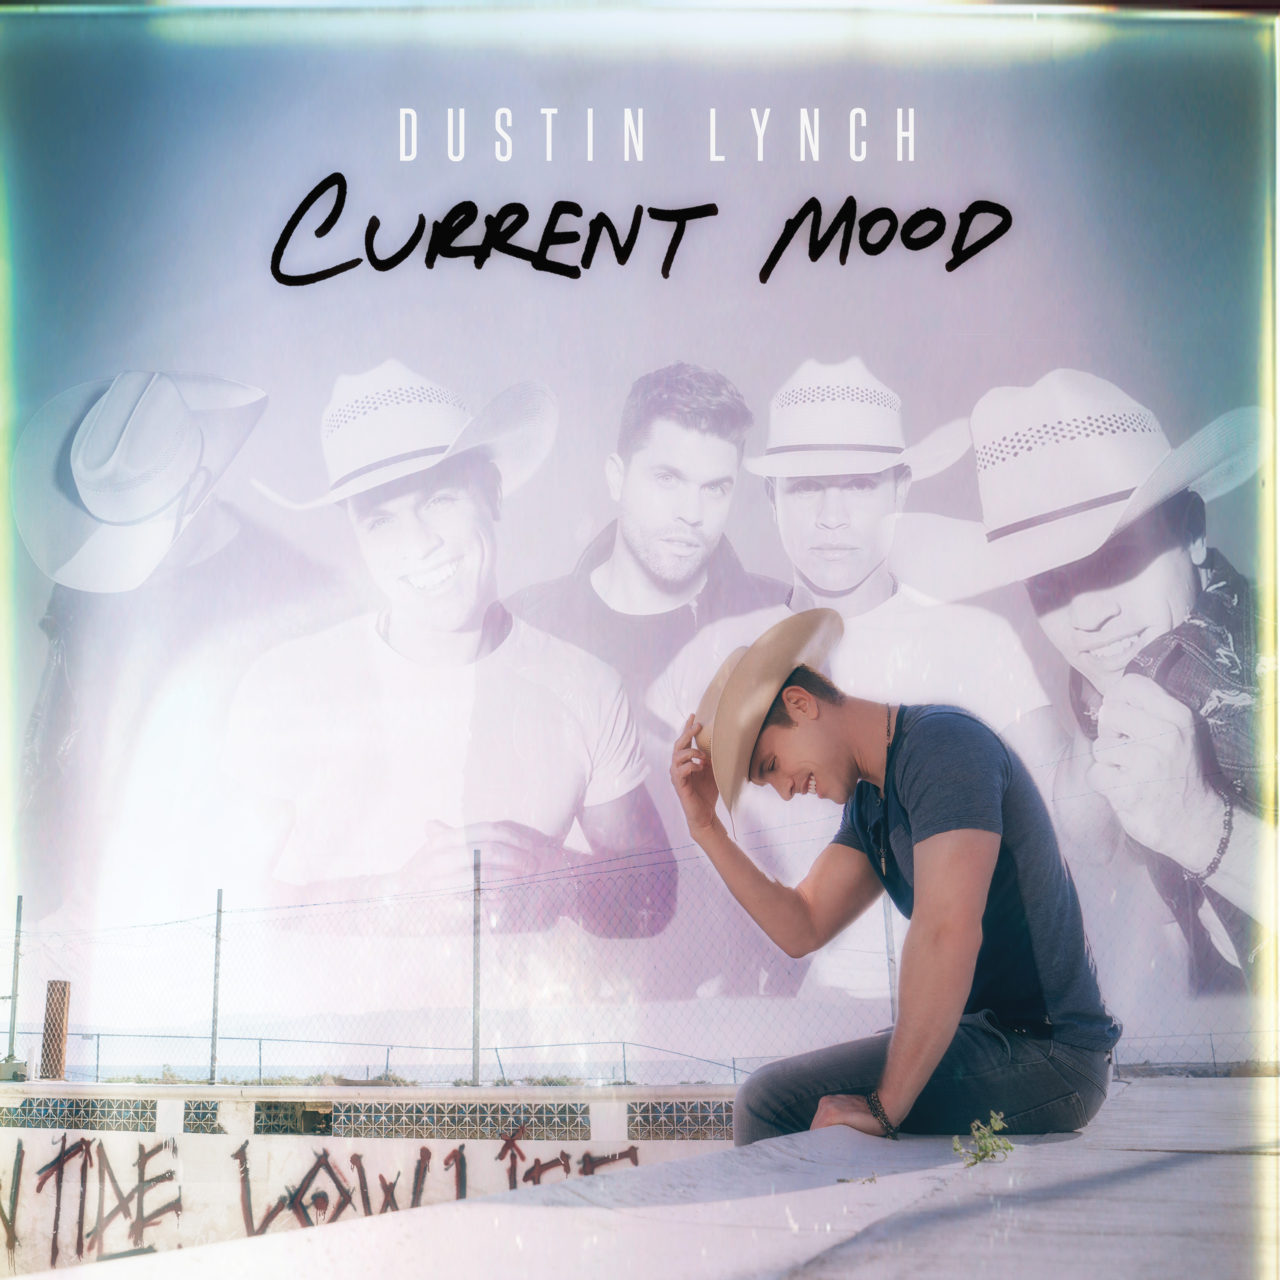 Dustin Lynch - Current Mood; Courtesy of Broken Bow Records